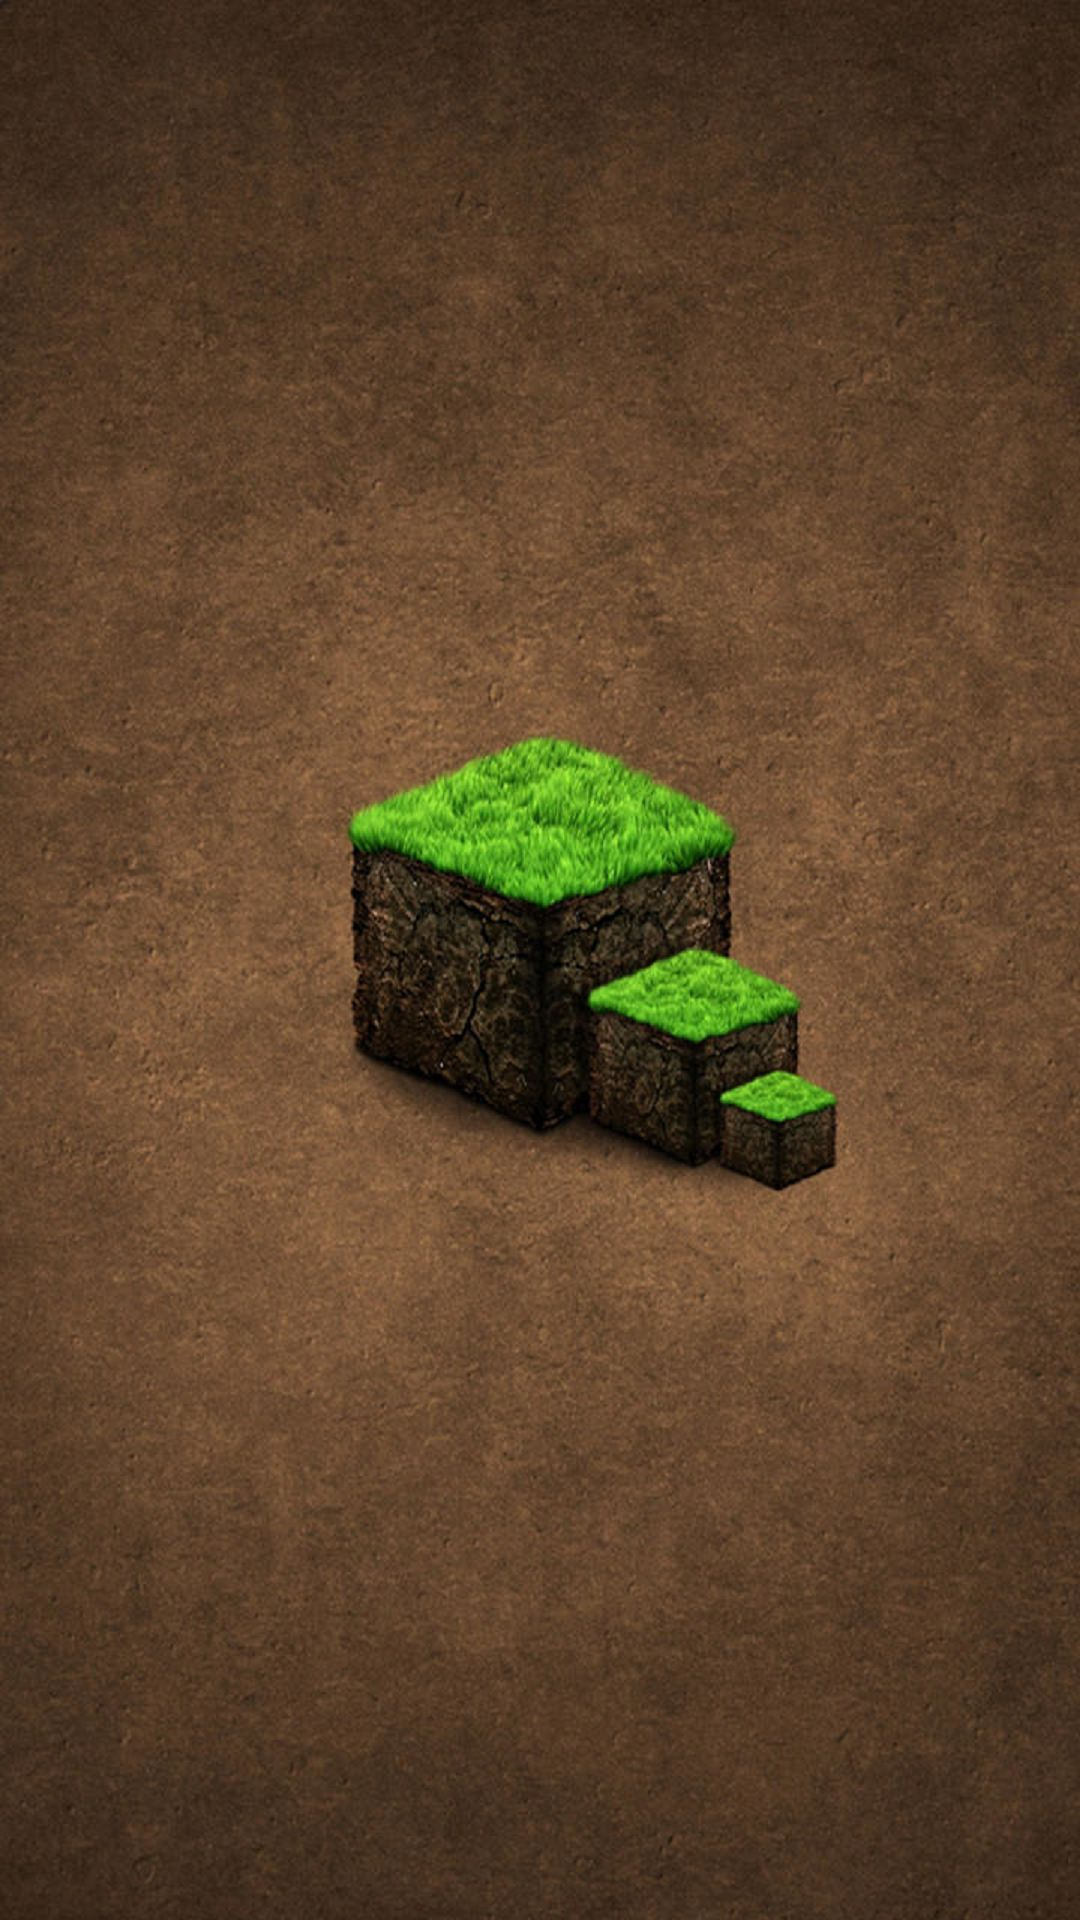 Green Grass Cube Steps Minecraft wallpaper, Android